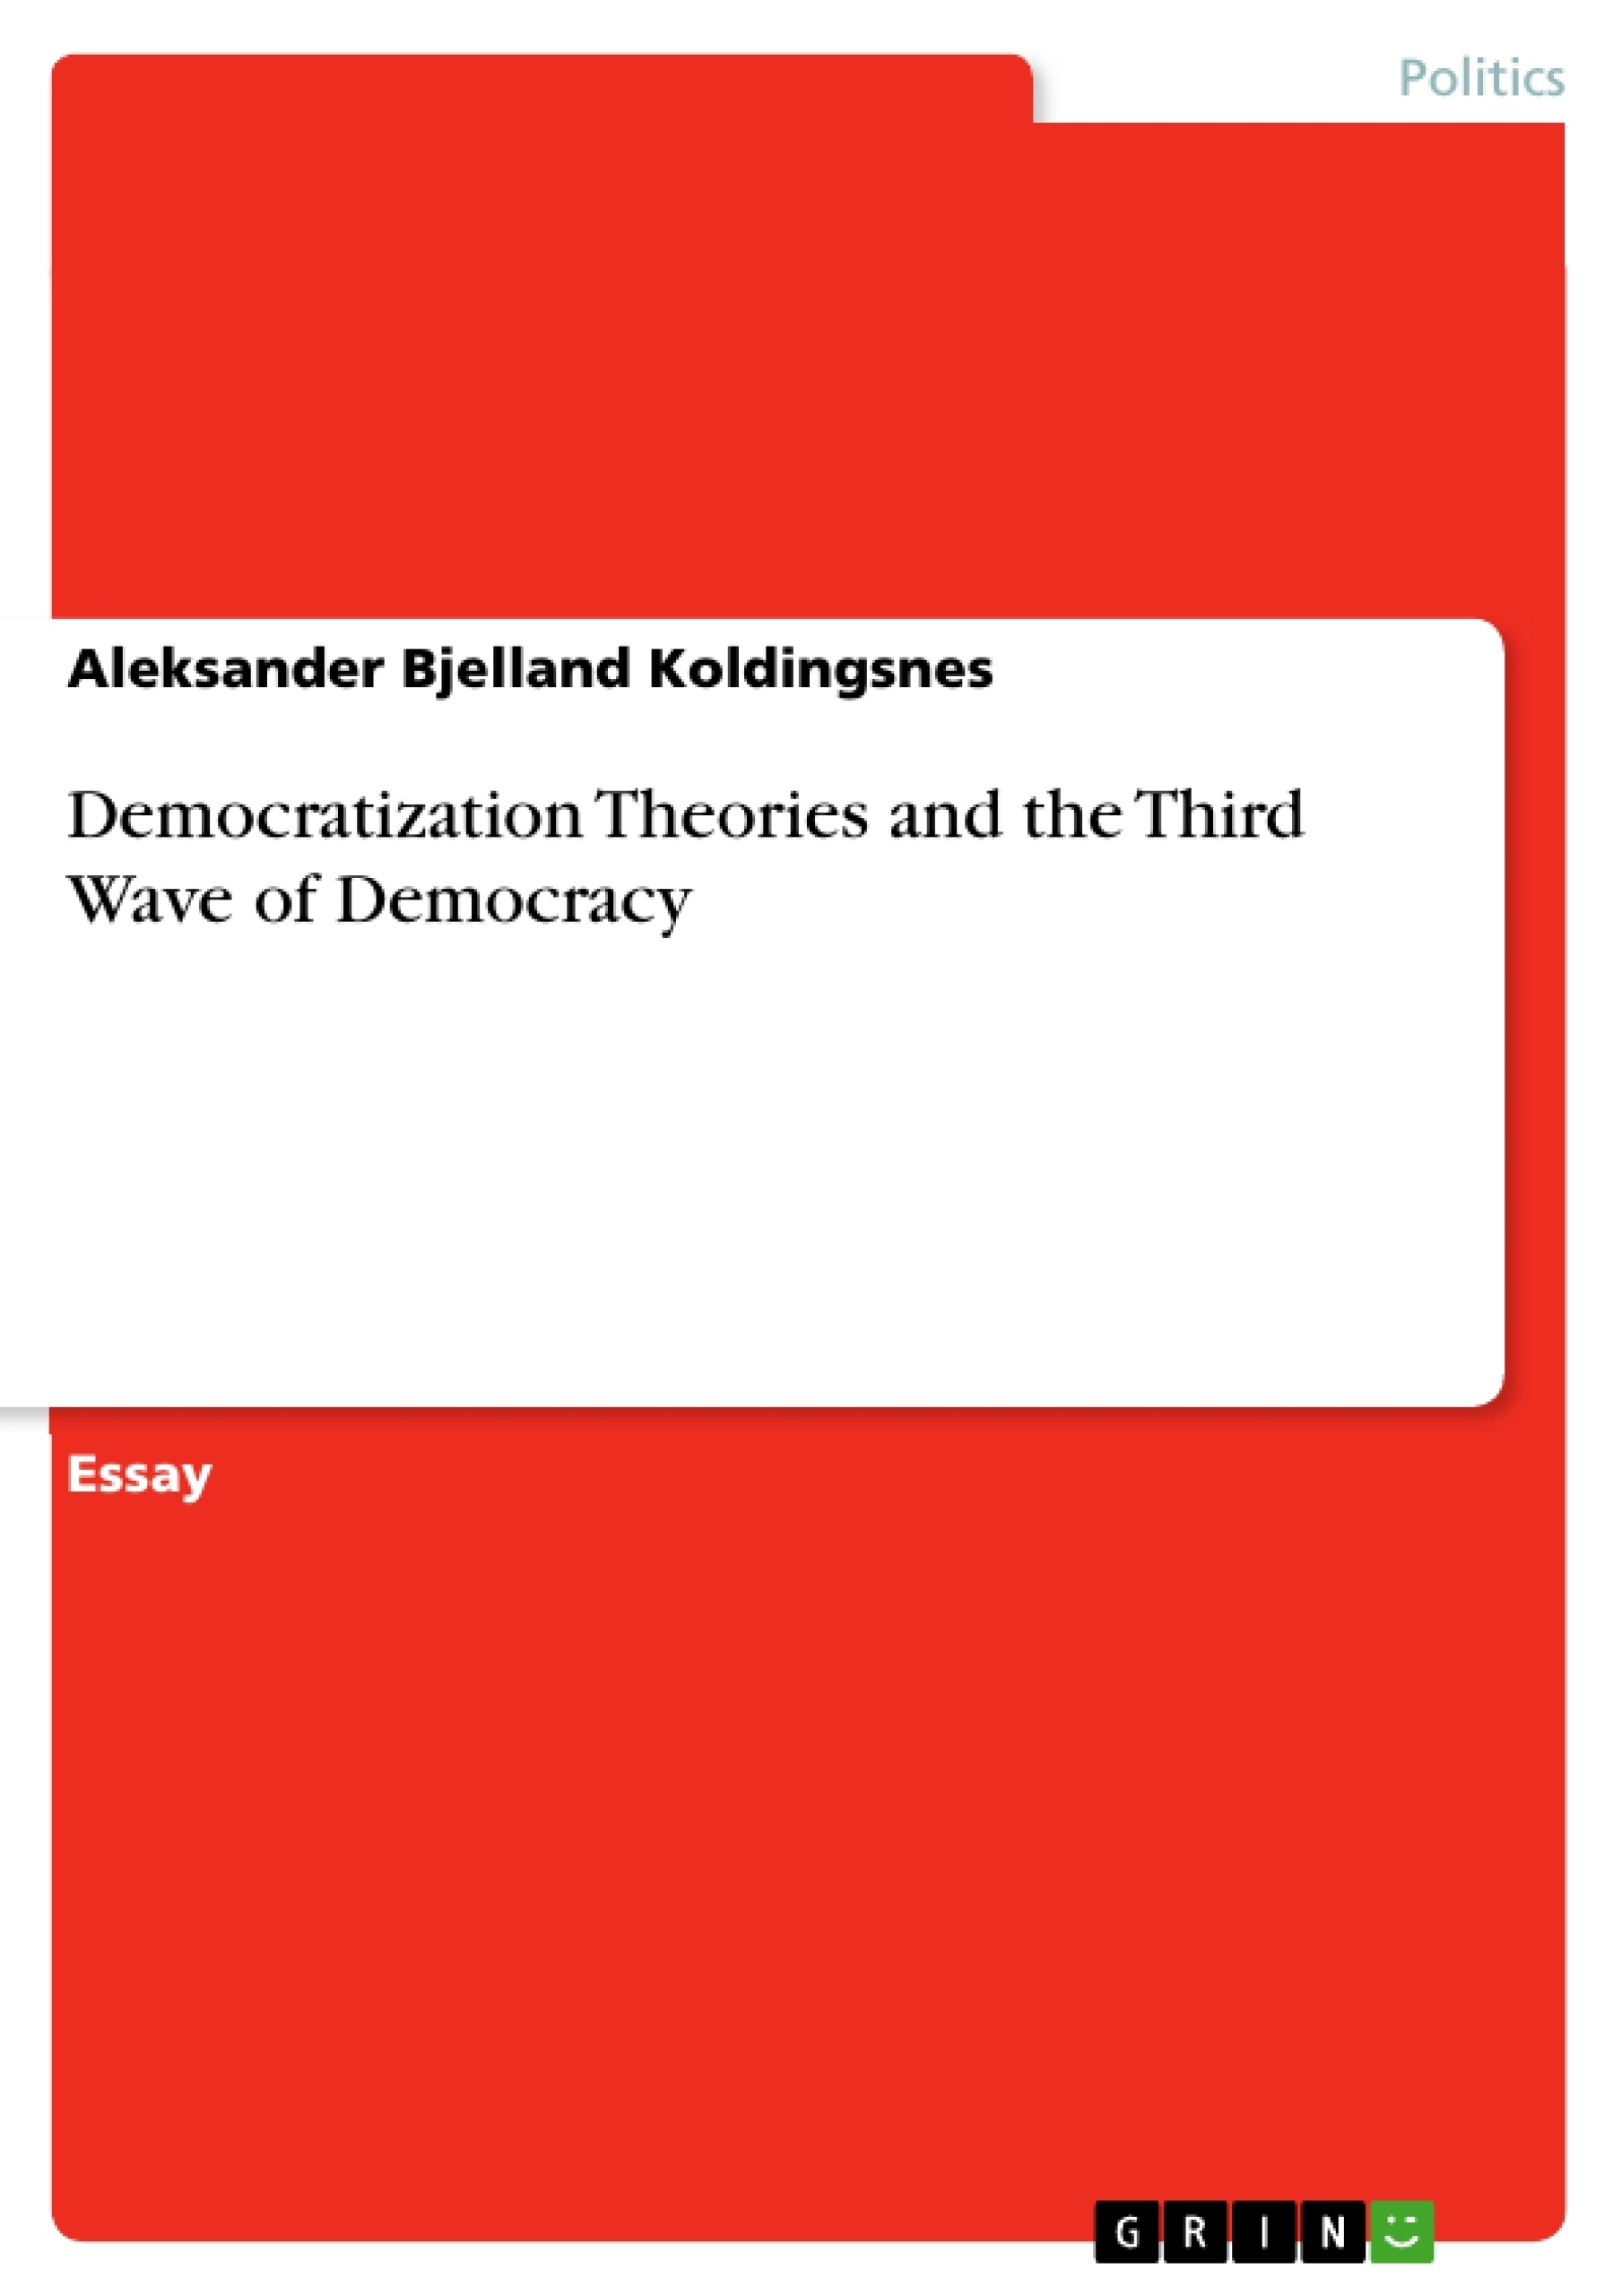 the wave of democratization politics essay While the study of democracy typically involves theories of comparative politics, scholarship on processes of democratization also implies international.